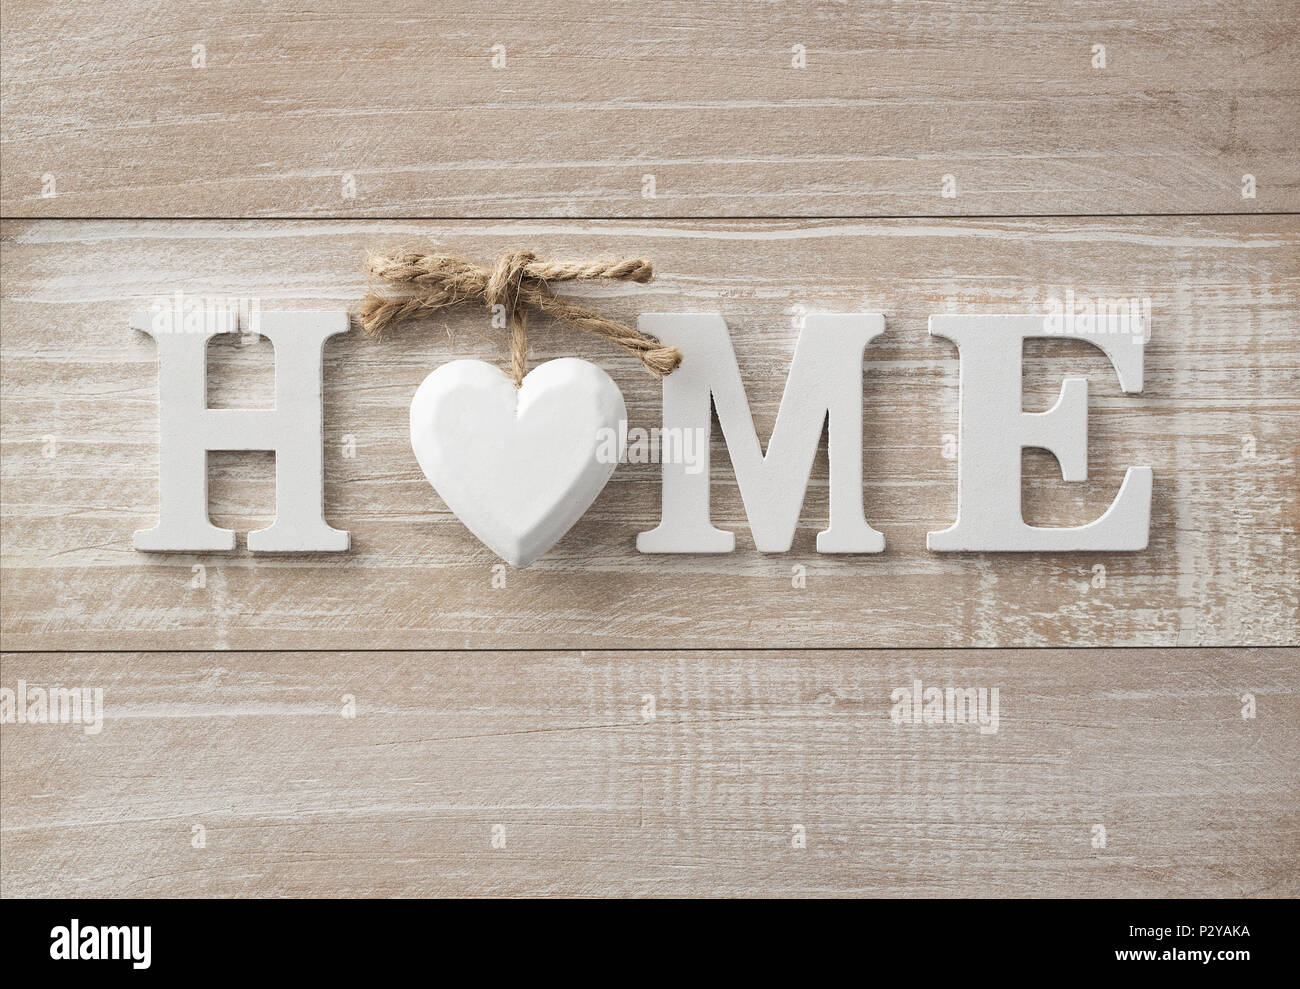 Home sweet home, wooden text on vintage board background with copy space - Stock Image